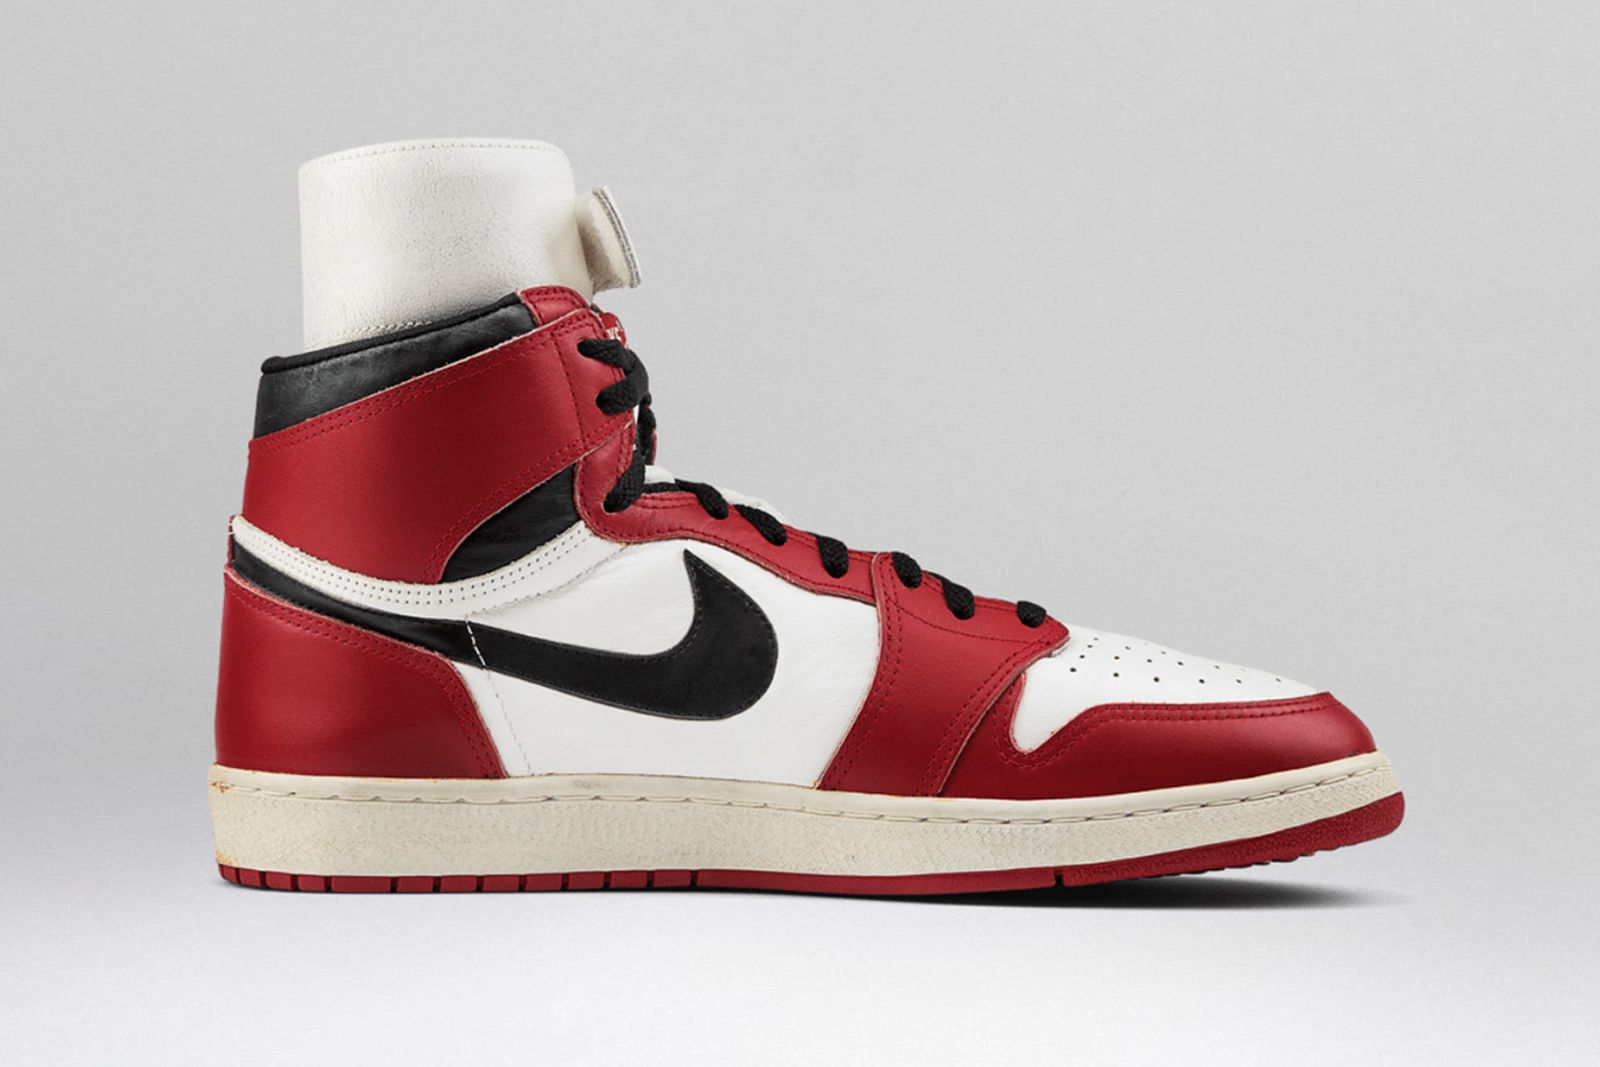 air jordan 1 history unreleased Nike michael jordan